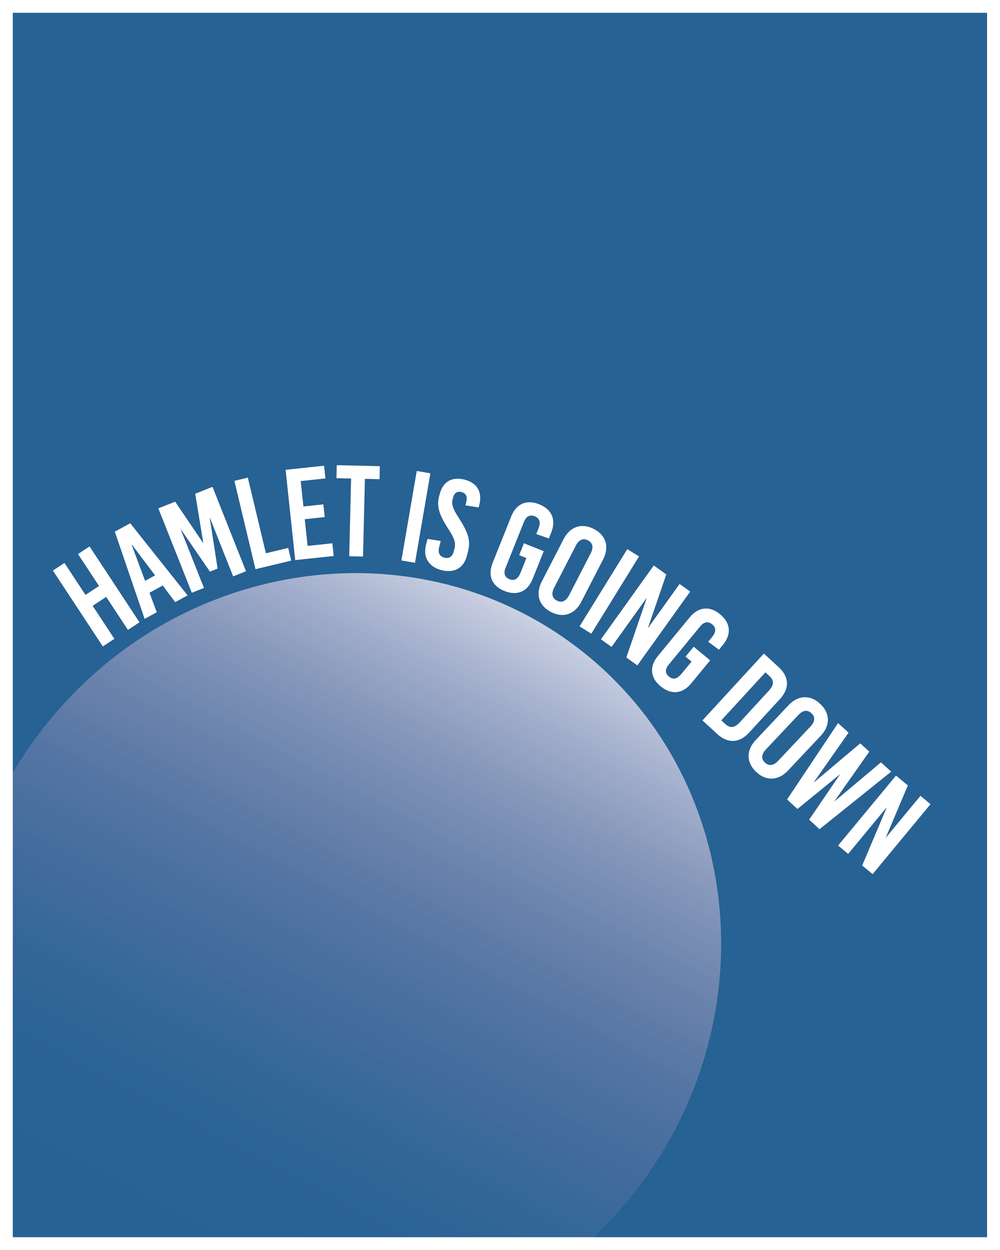 Hamlet Posters ACT IV-07.png